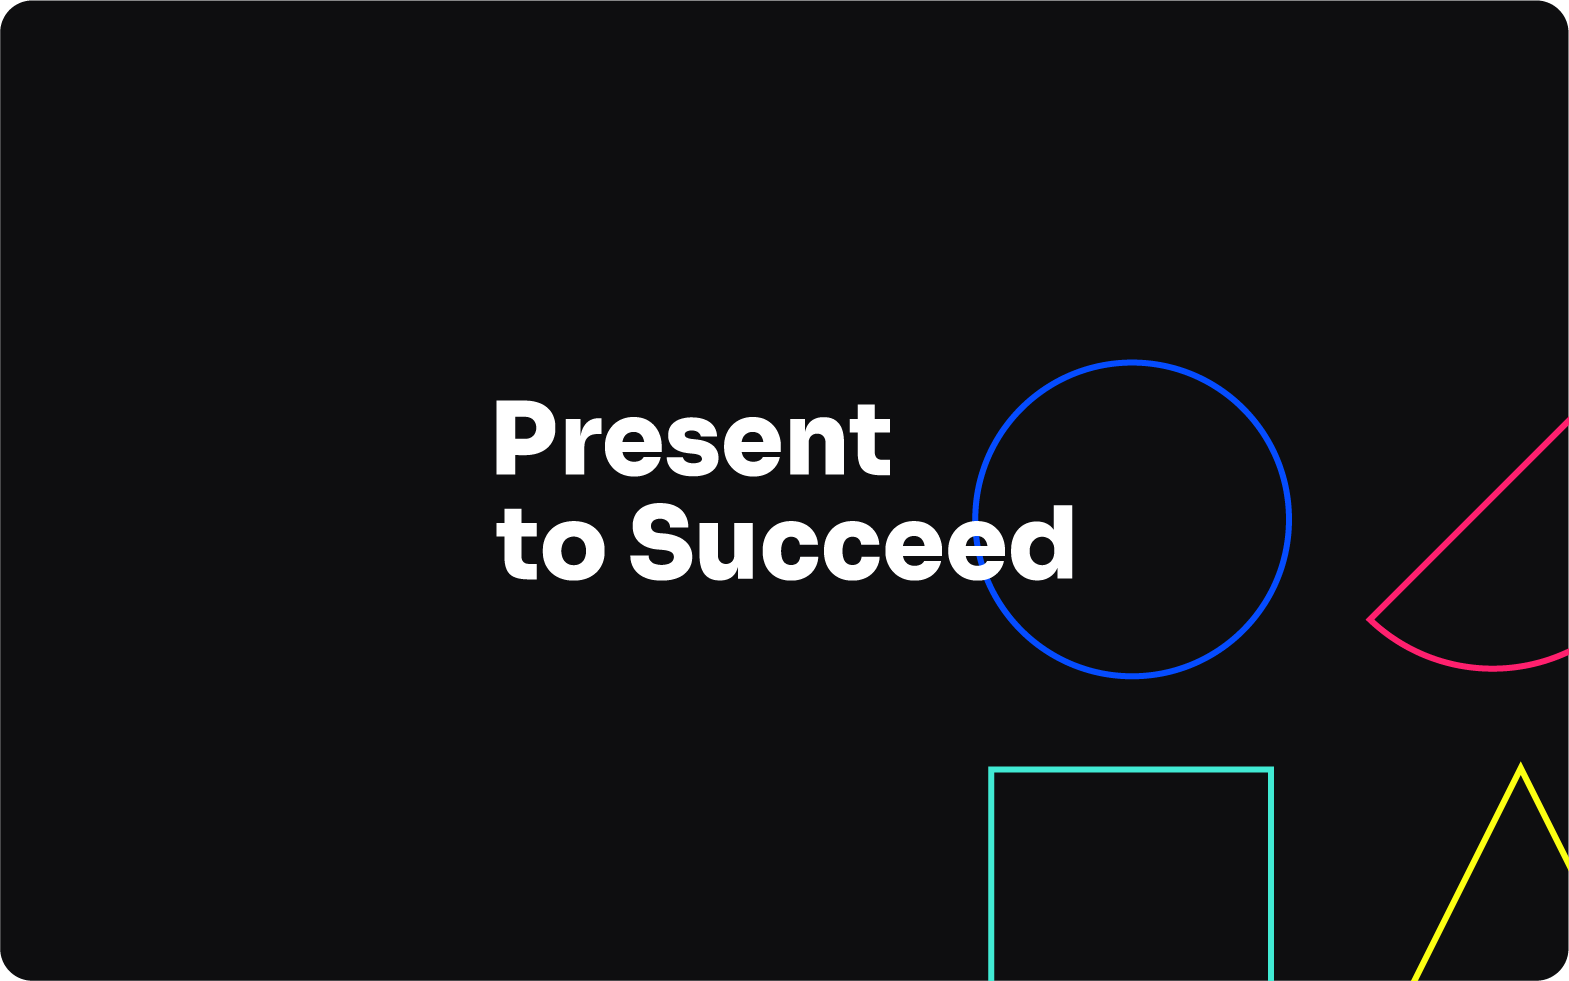 Meet 356 Labs, a boutique agency that launched the world's first virtual presentation skills conference on Hopin